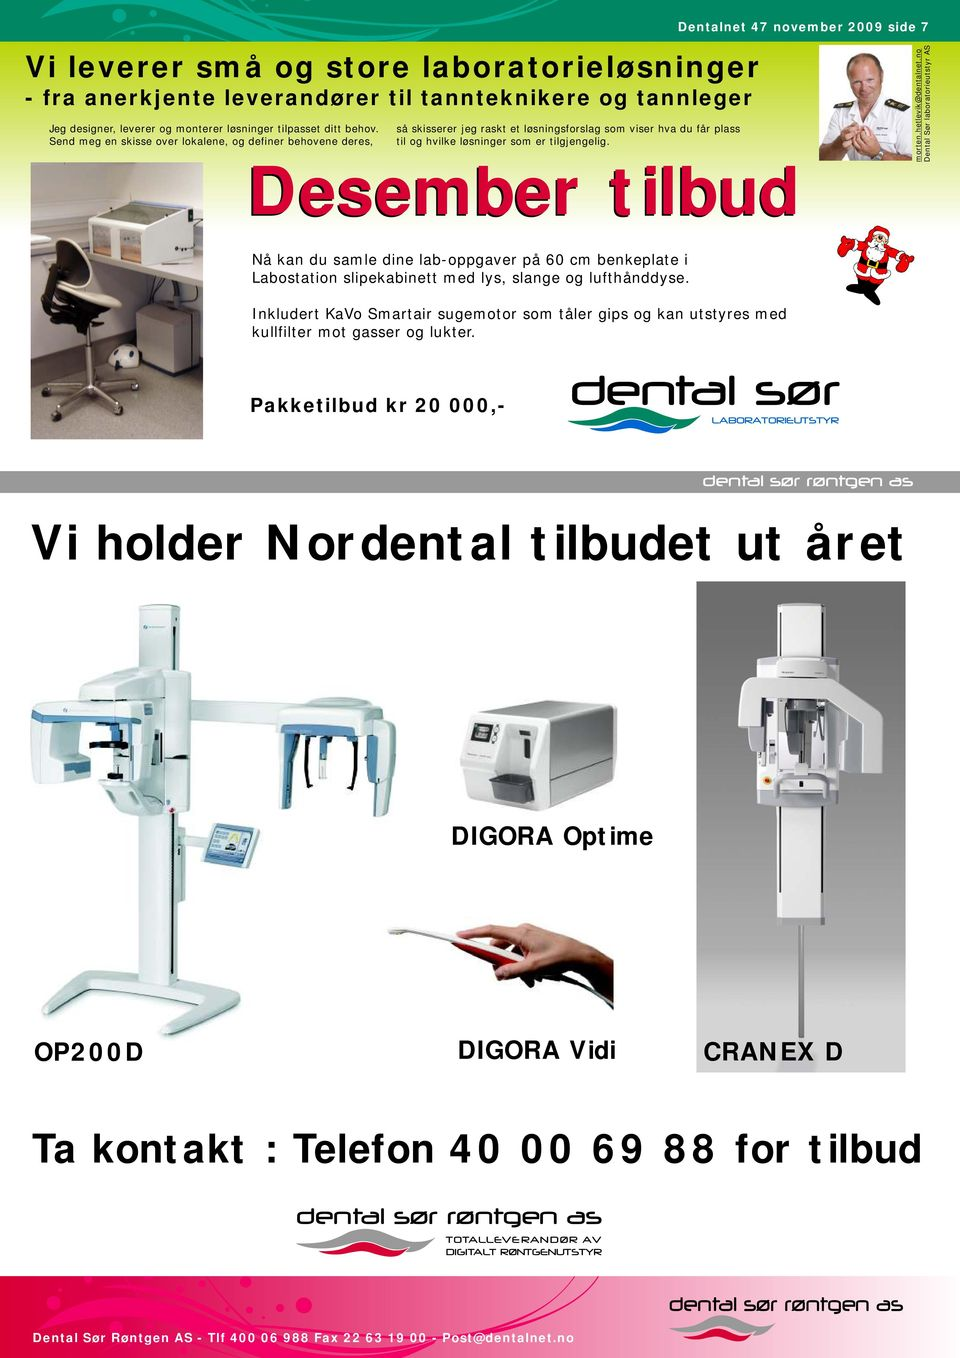 Desember tilbud Dentalnet 47 november 2009 side 7 morten.hetlevik@dentalnet.